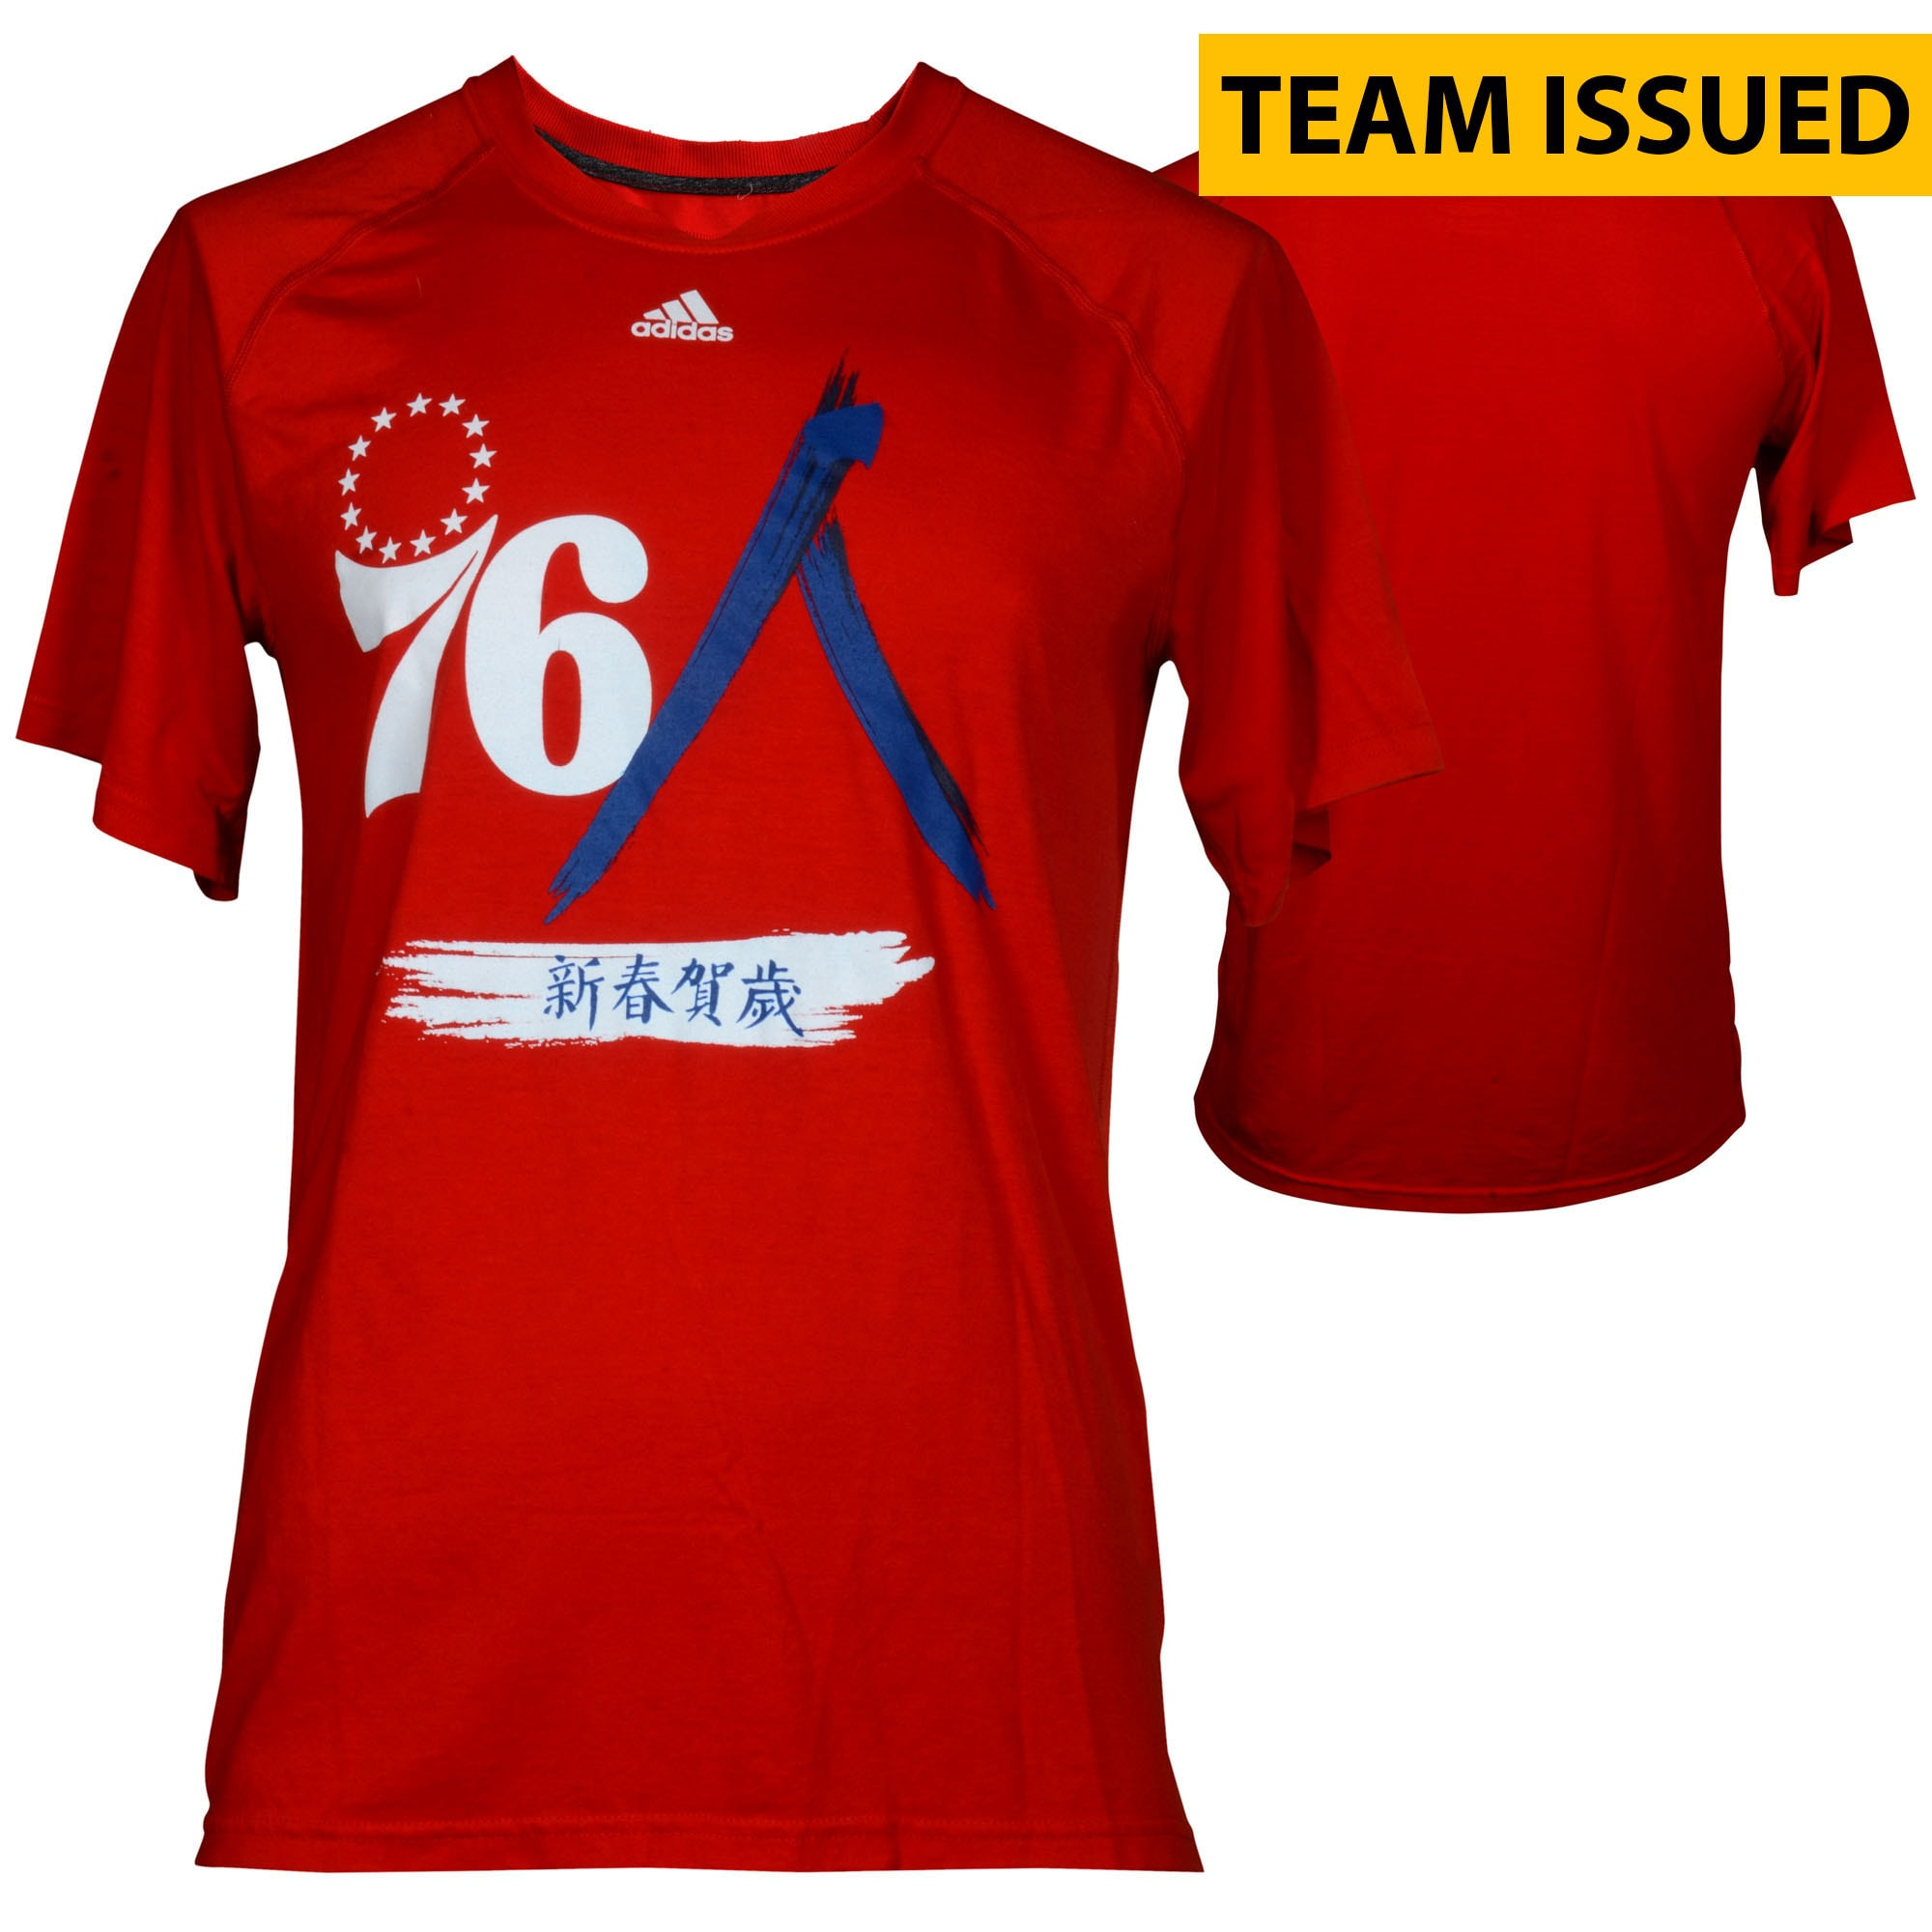 Philadelphia 76ers Fanatics Authentic Team-Issued Red Chinese New Year Shooter Shirt from the 2016-17 NBA Season - Size XL